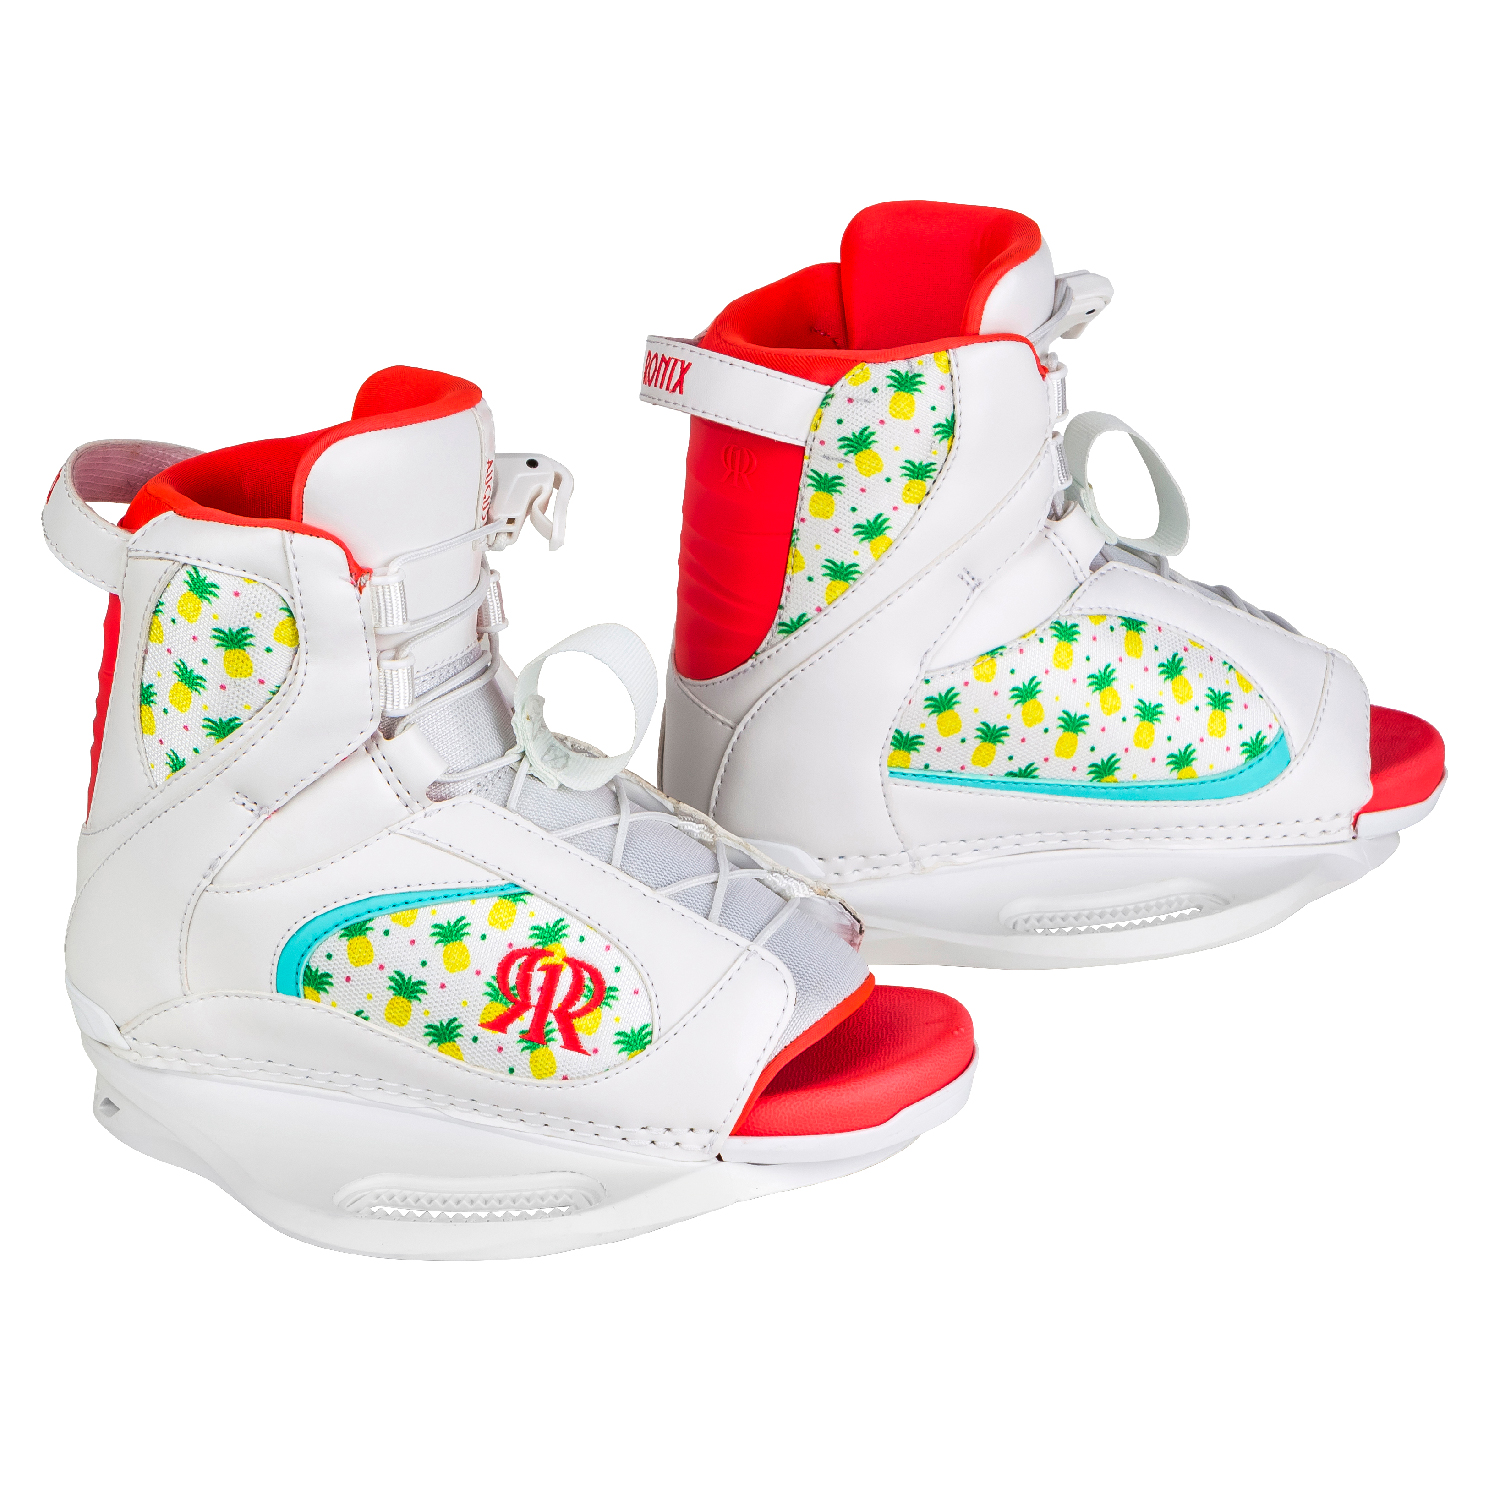 Ronix 2017 August Girl's 2-6 (White/Fruit Flavored) Kid's